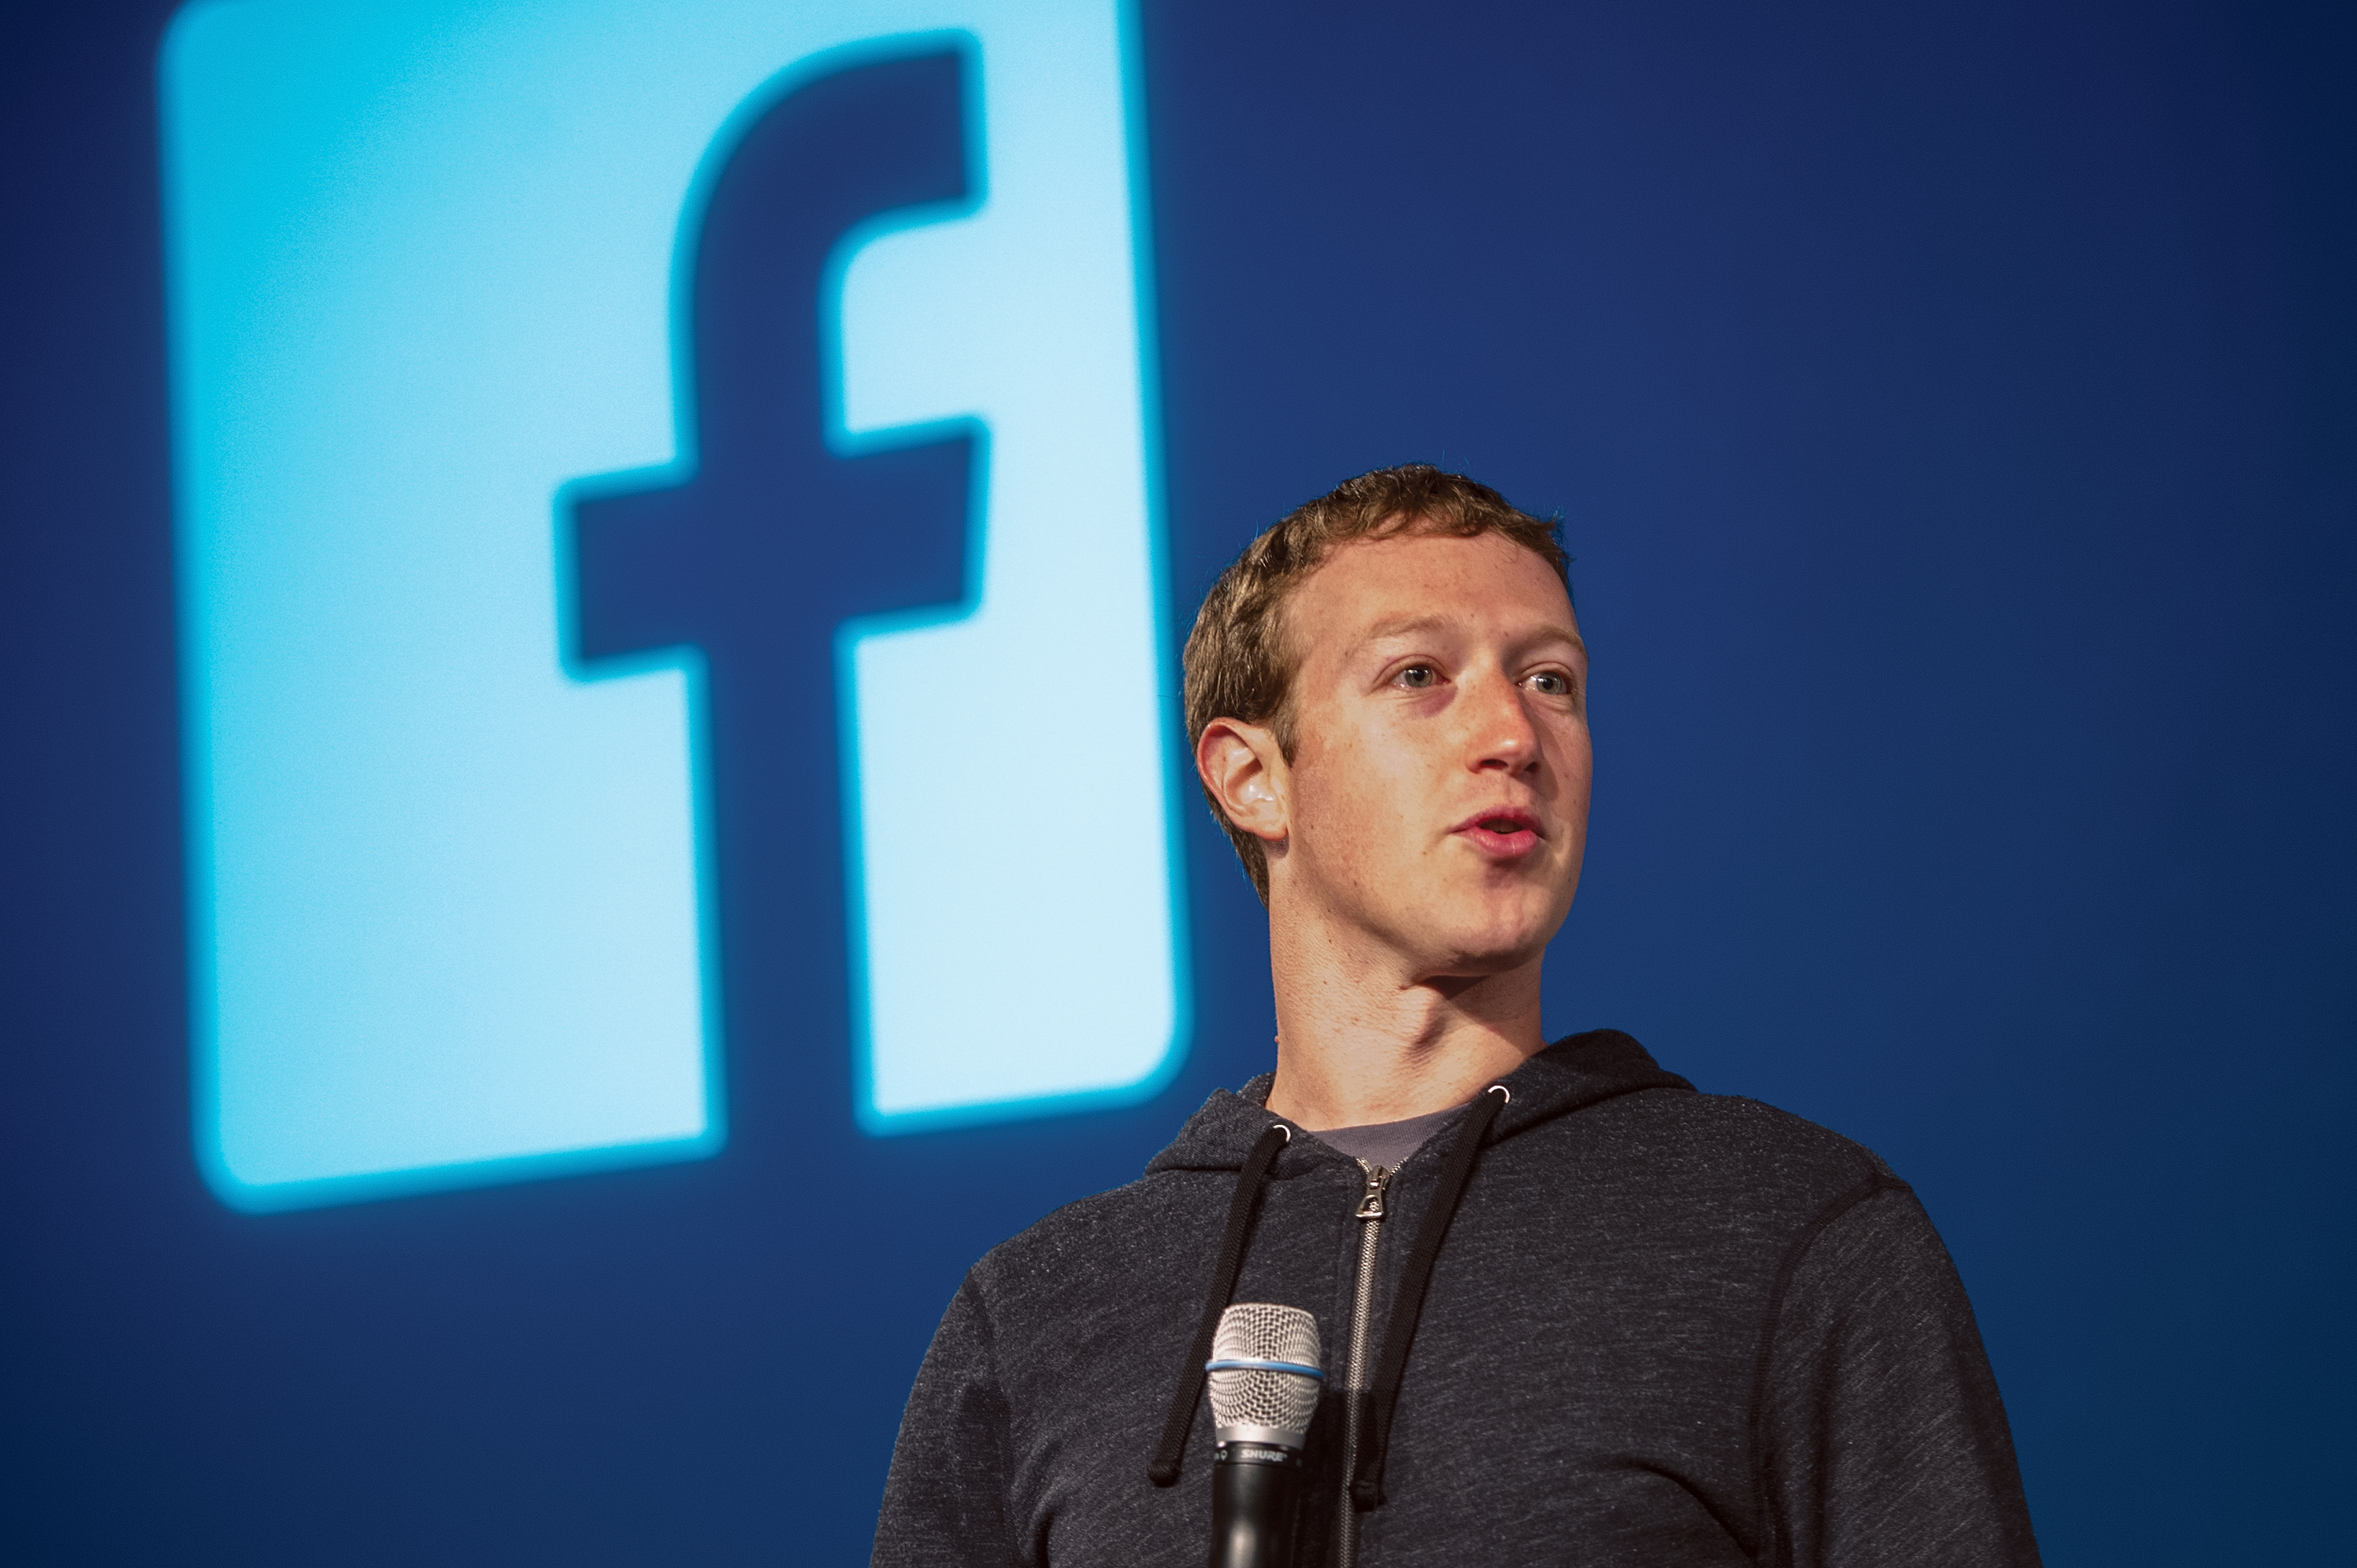 Mark Zuckerberg, chief executive officer and founder of Facebook Inc., speaks during an event at the company's headquarters in Menlo Park, California, on March 7, 2013.